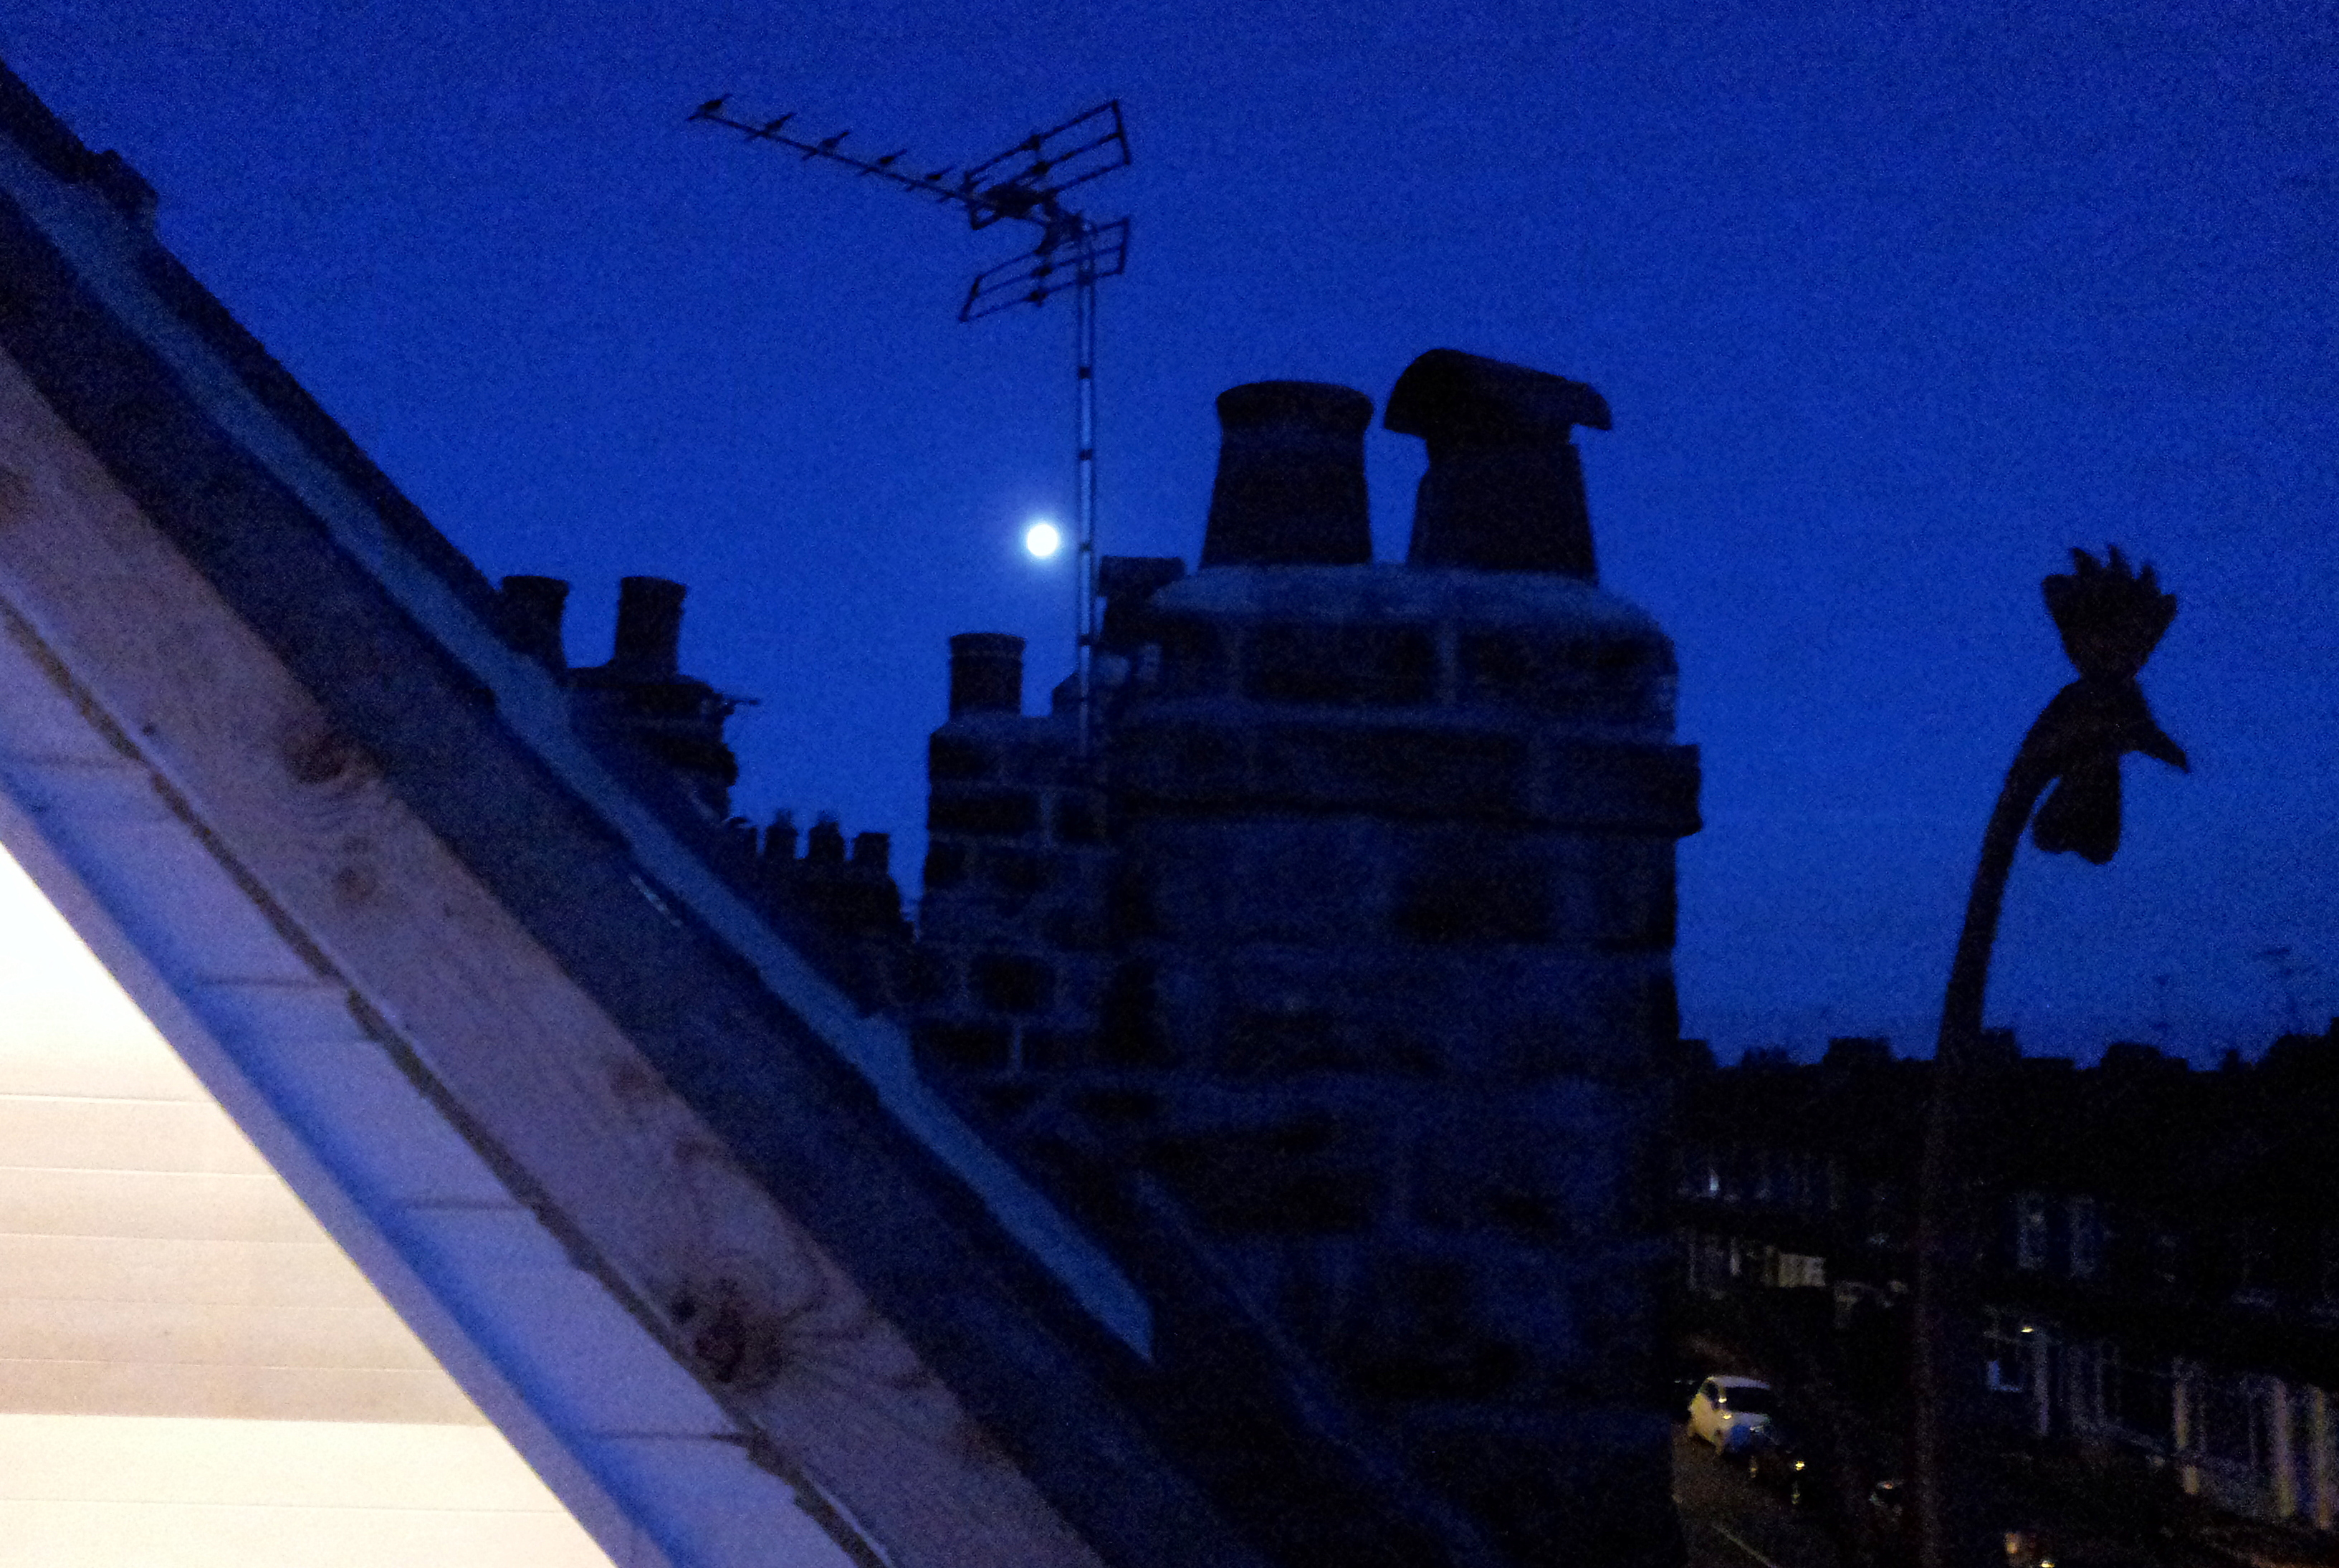 The moon from a roof terrace, Harrogate Yorkshire.